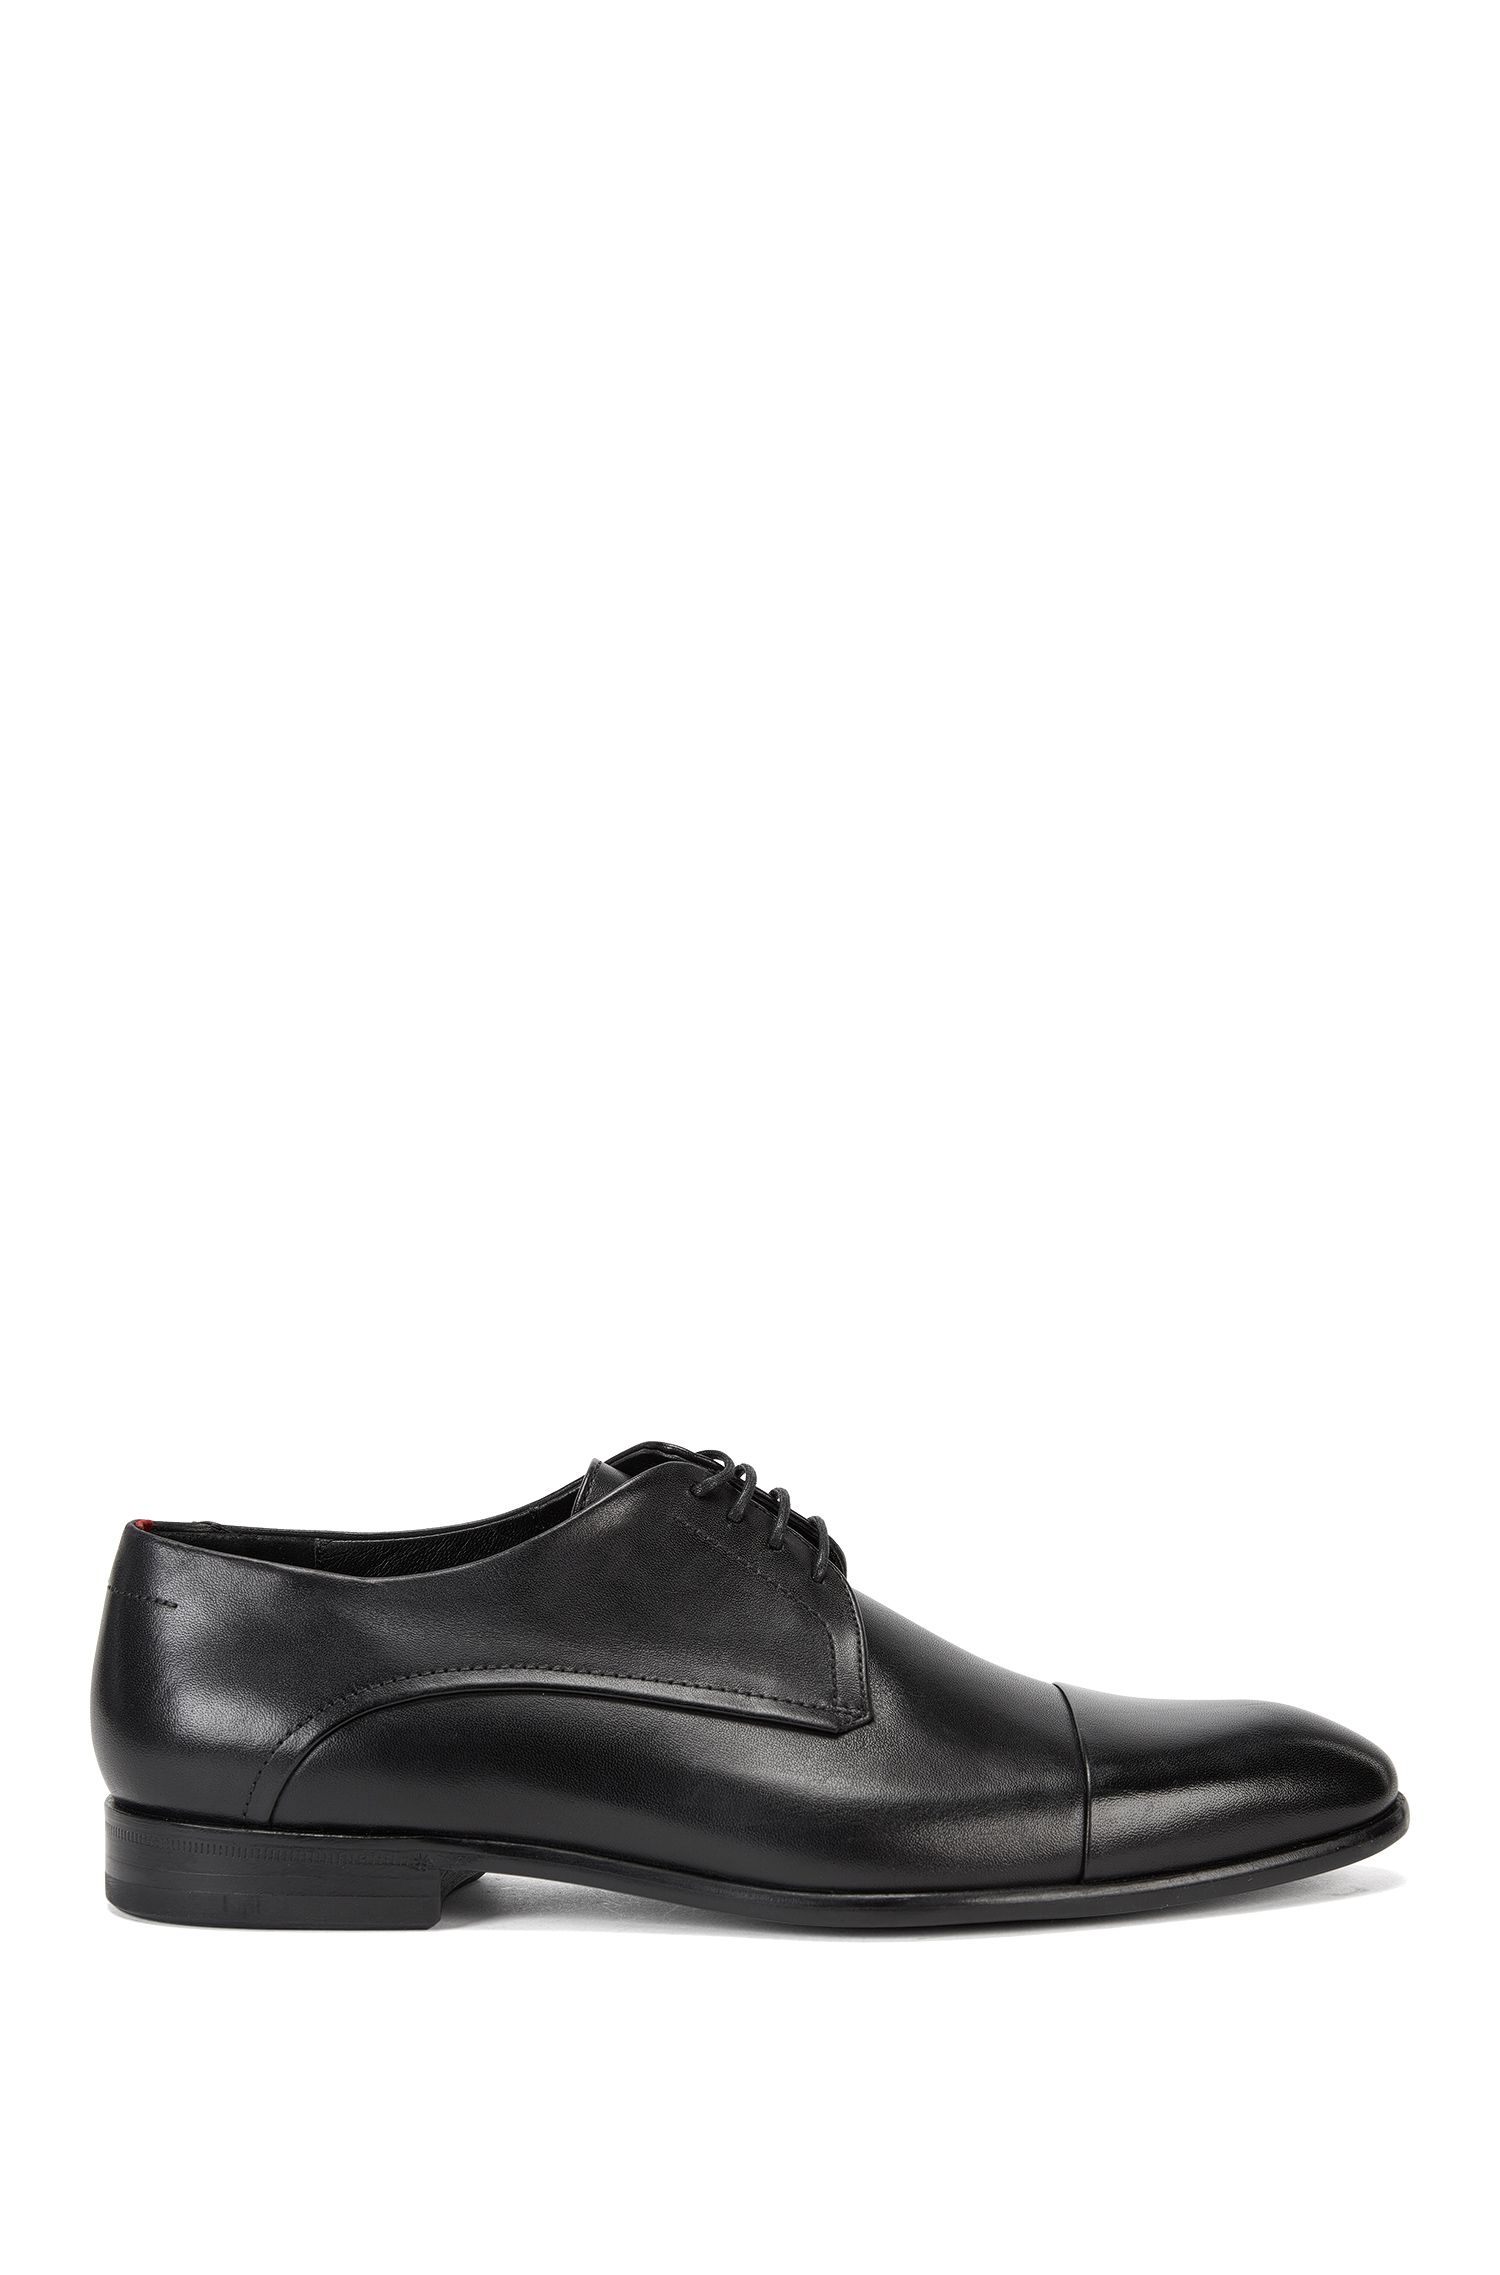 Italian Leather Derby Dress Shoe | Dressapp Derb Buctst